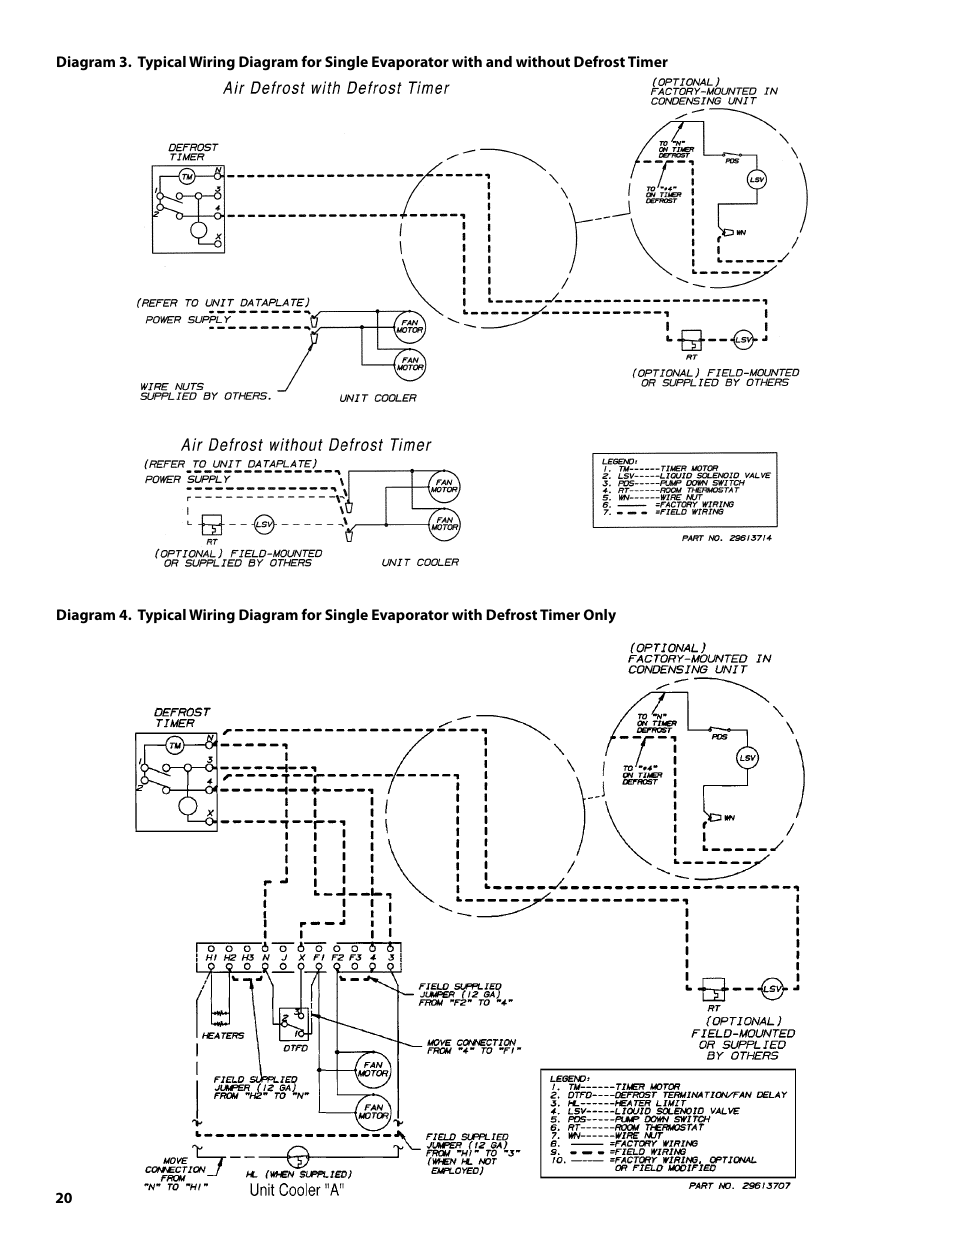 defrost thermostat wiring diagram